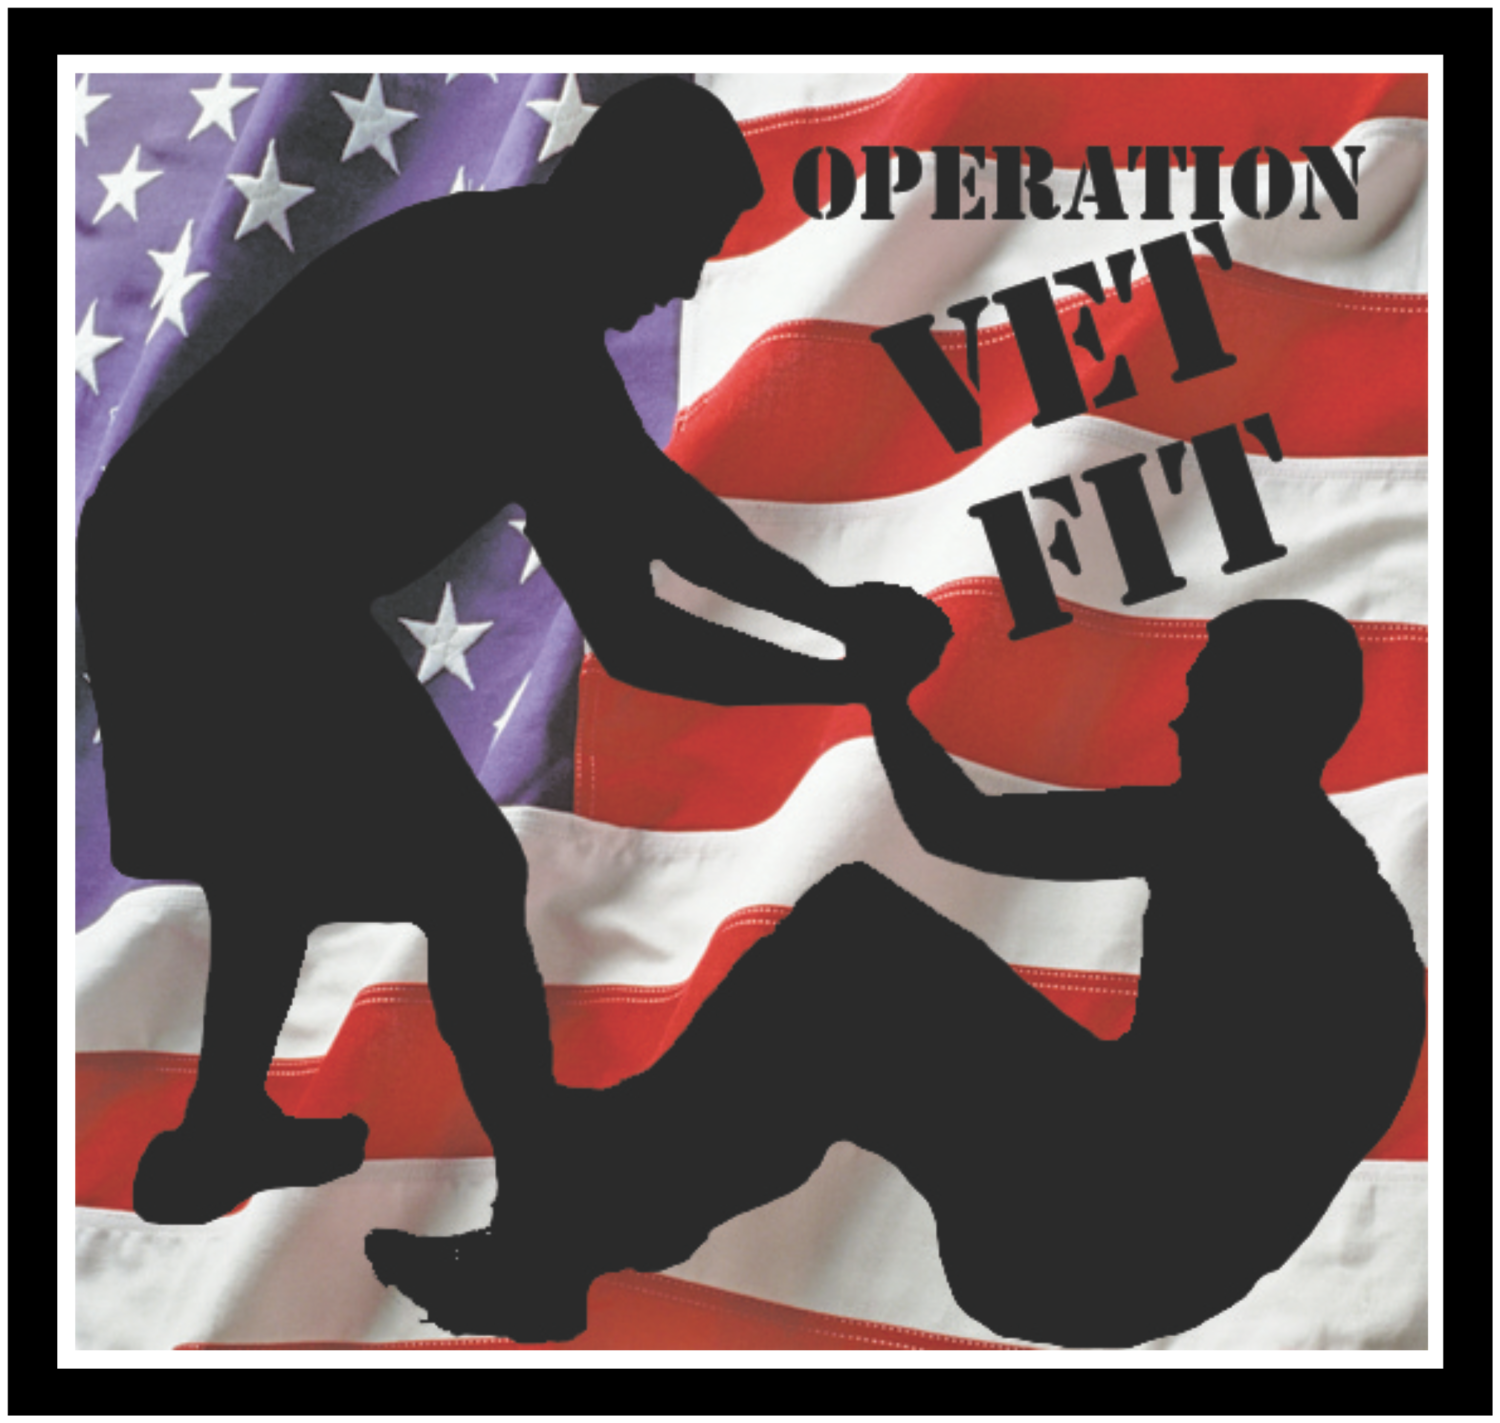 Operation Vet Fit